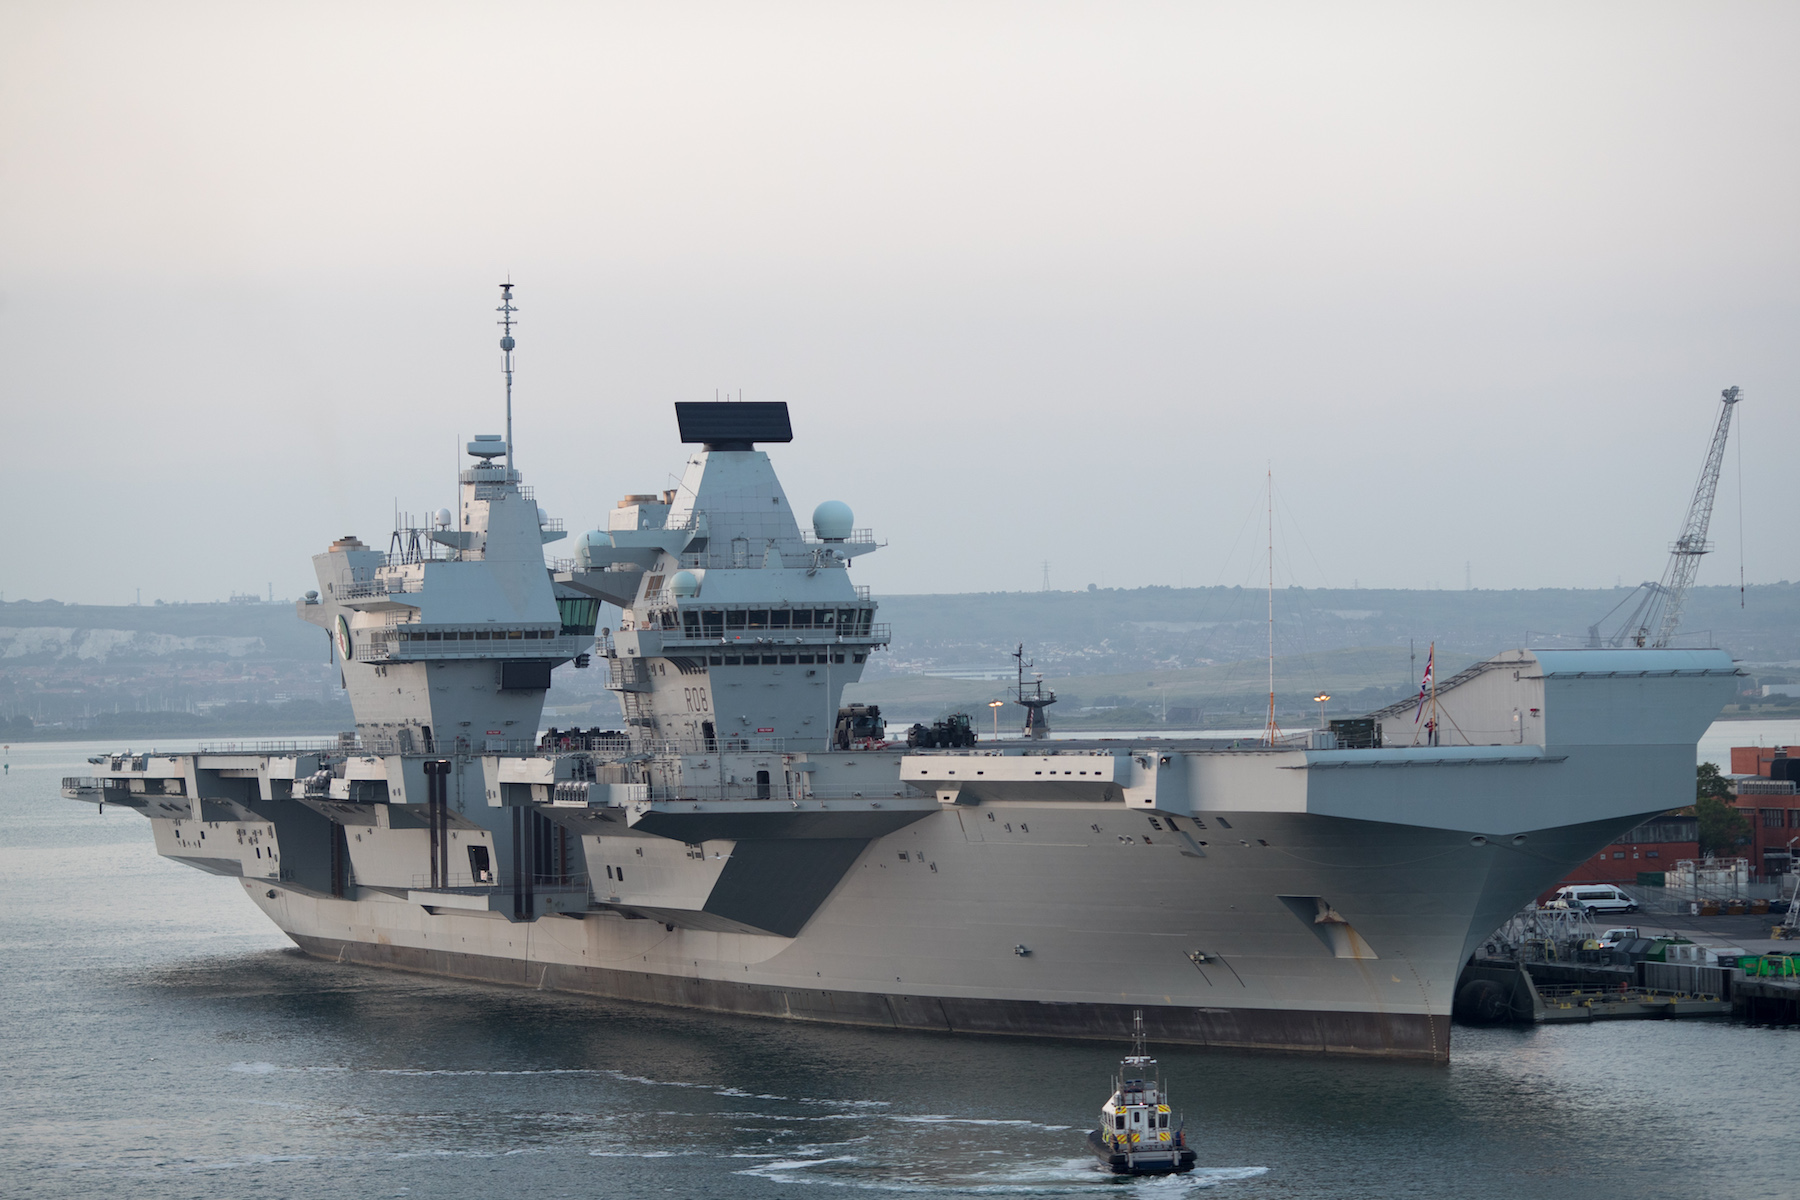 Britain's Newest Aircraft Carrier Has Its Own On-Board Pub, Of Course